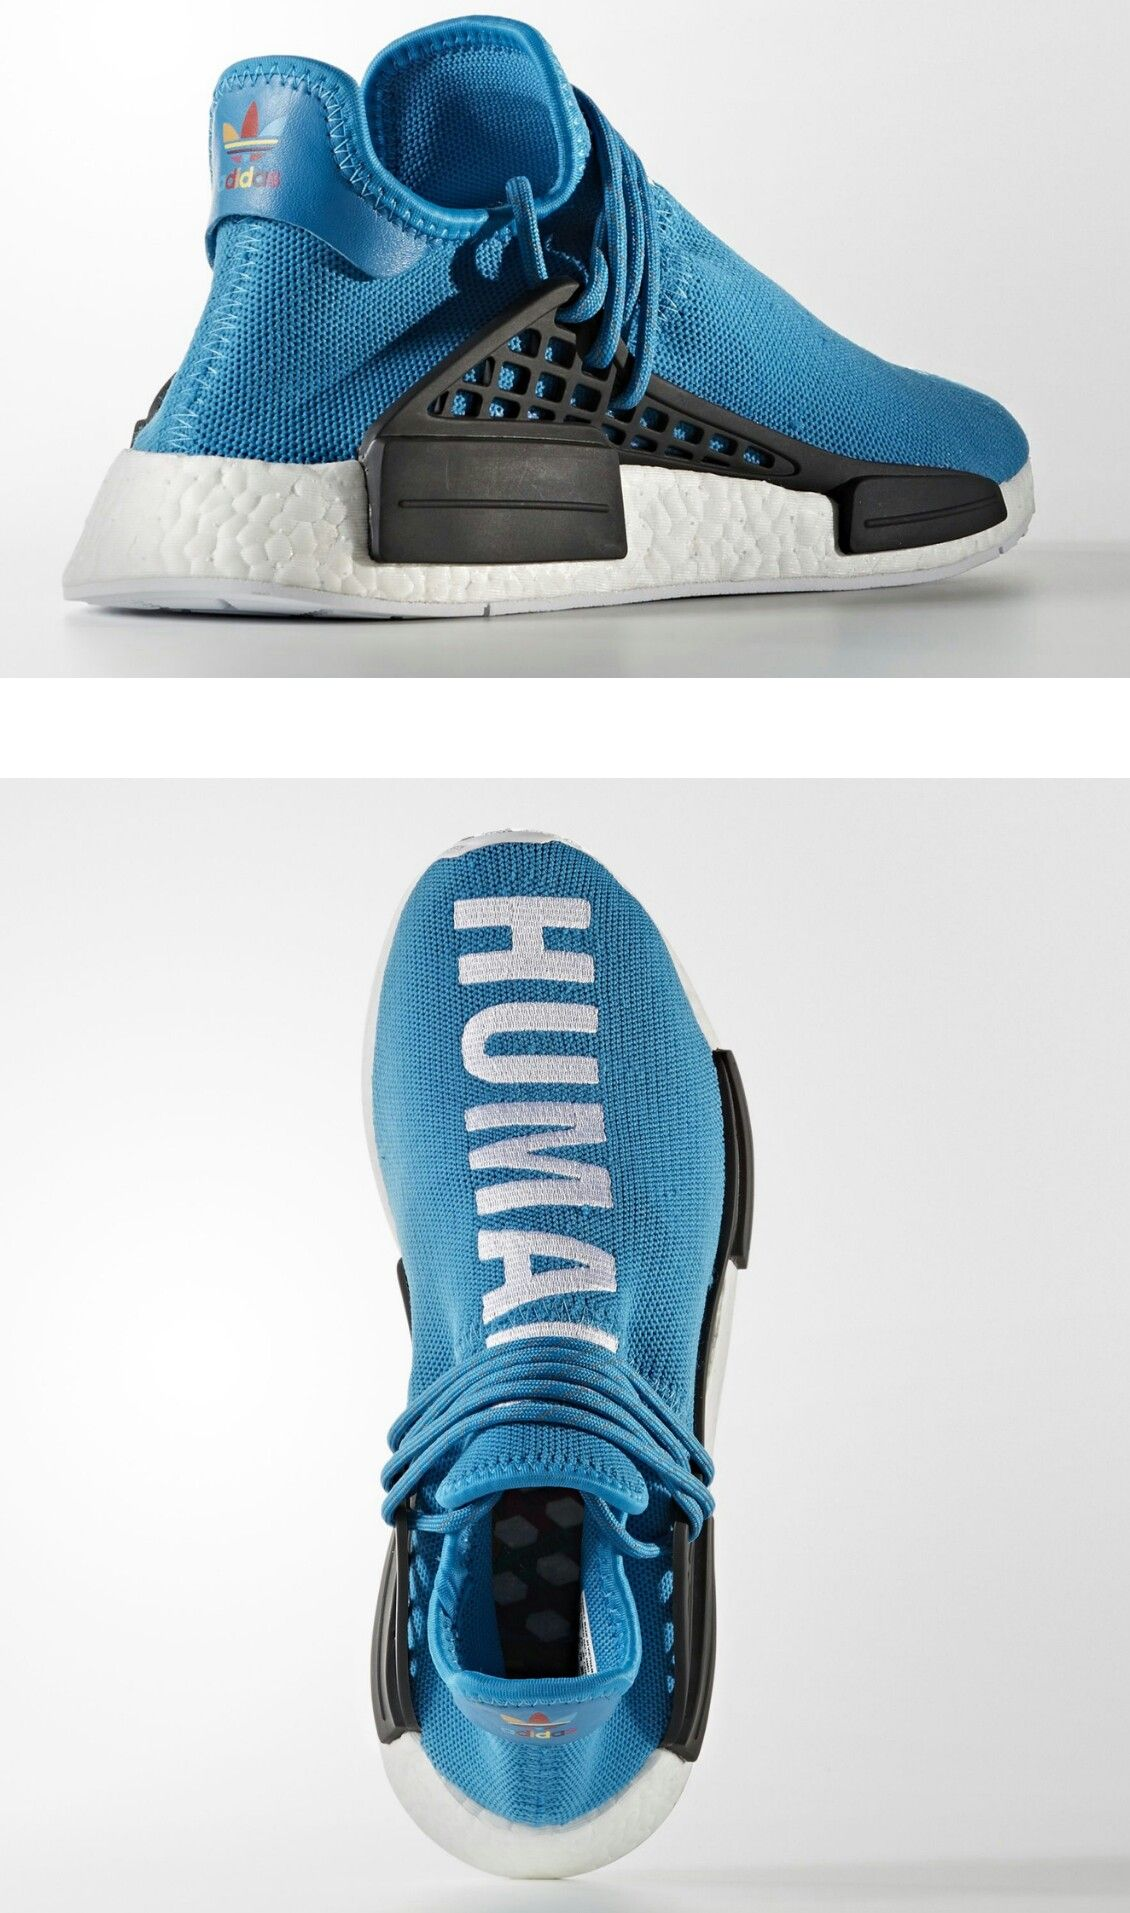 661e8d375 Pharrell x adidas NMDs. Each shoe in the pack will be slightly different